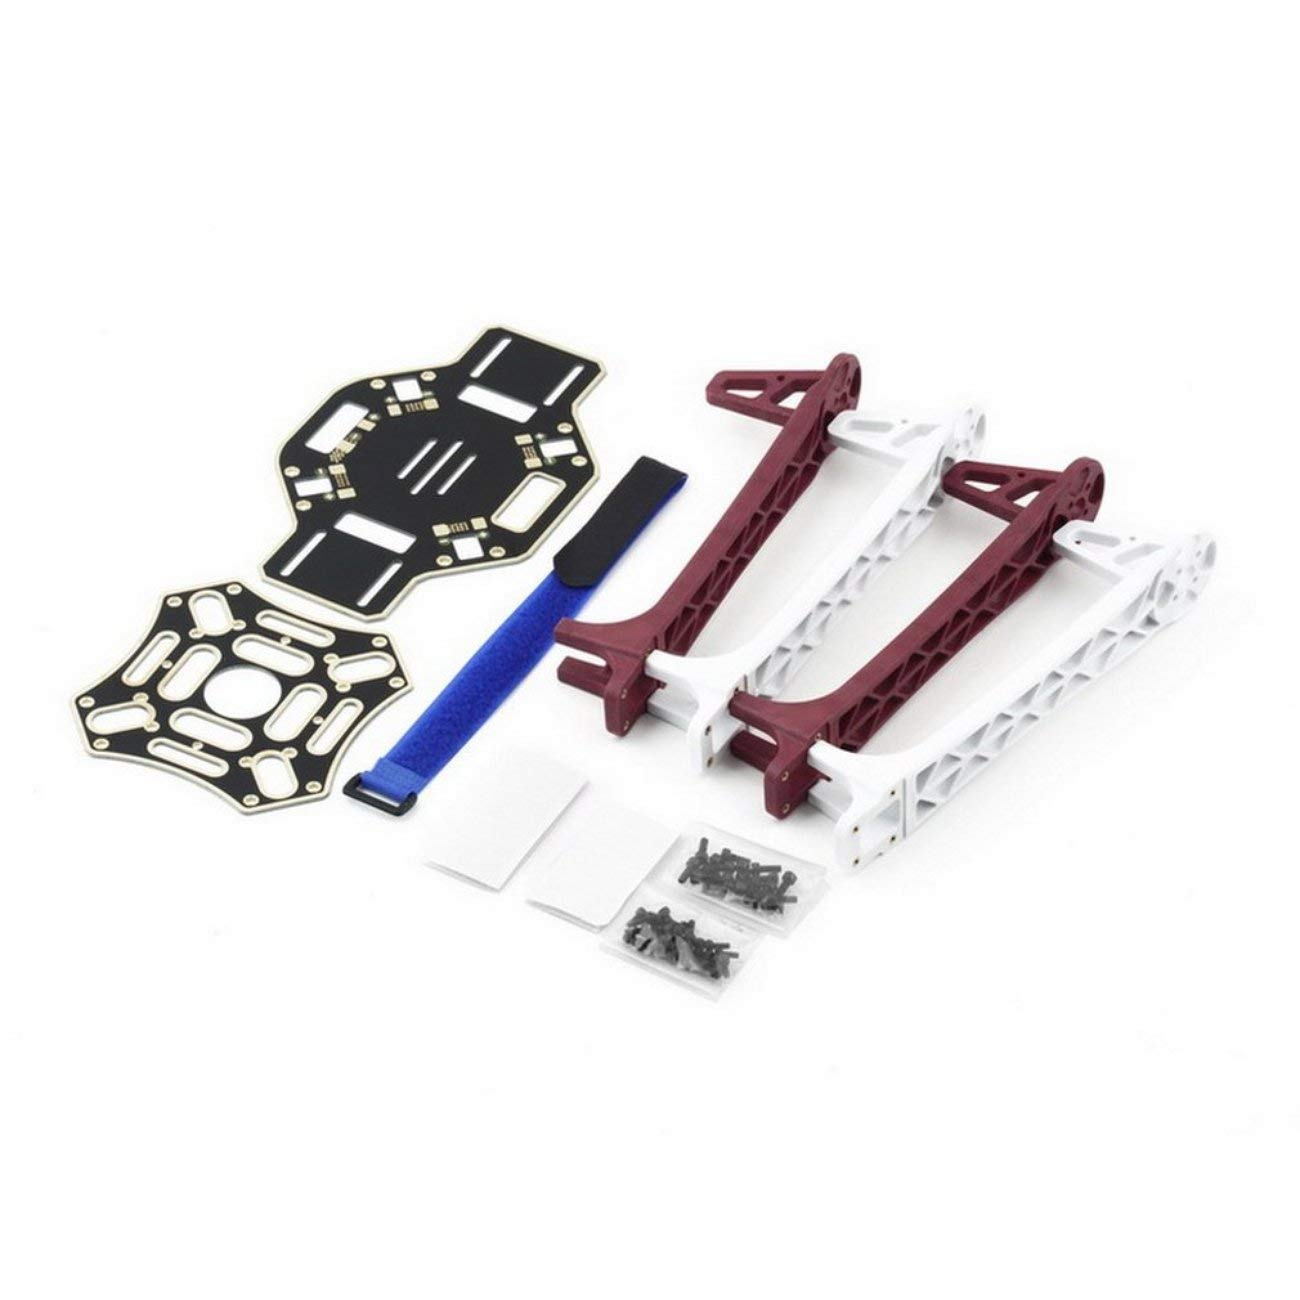 F450 TOP & Bottom F450-V2 Central Frame Landing Arm Wheel Boards w/Screw Jiobapiongxin